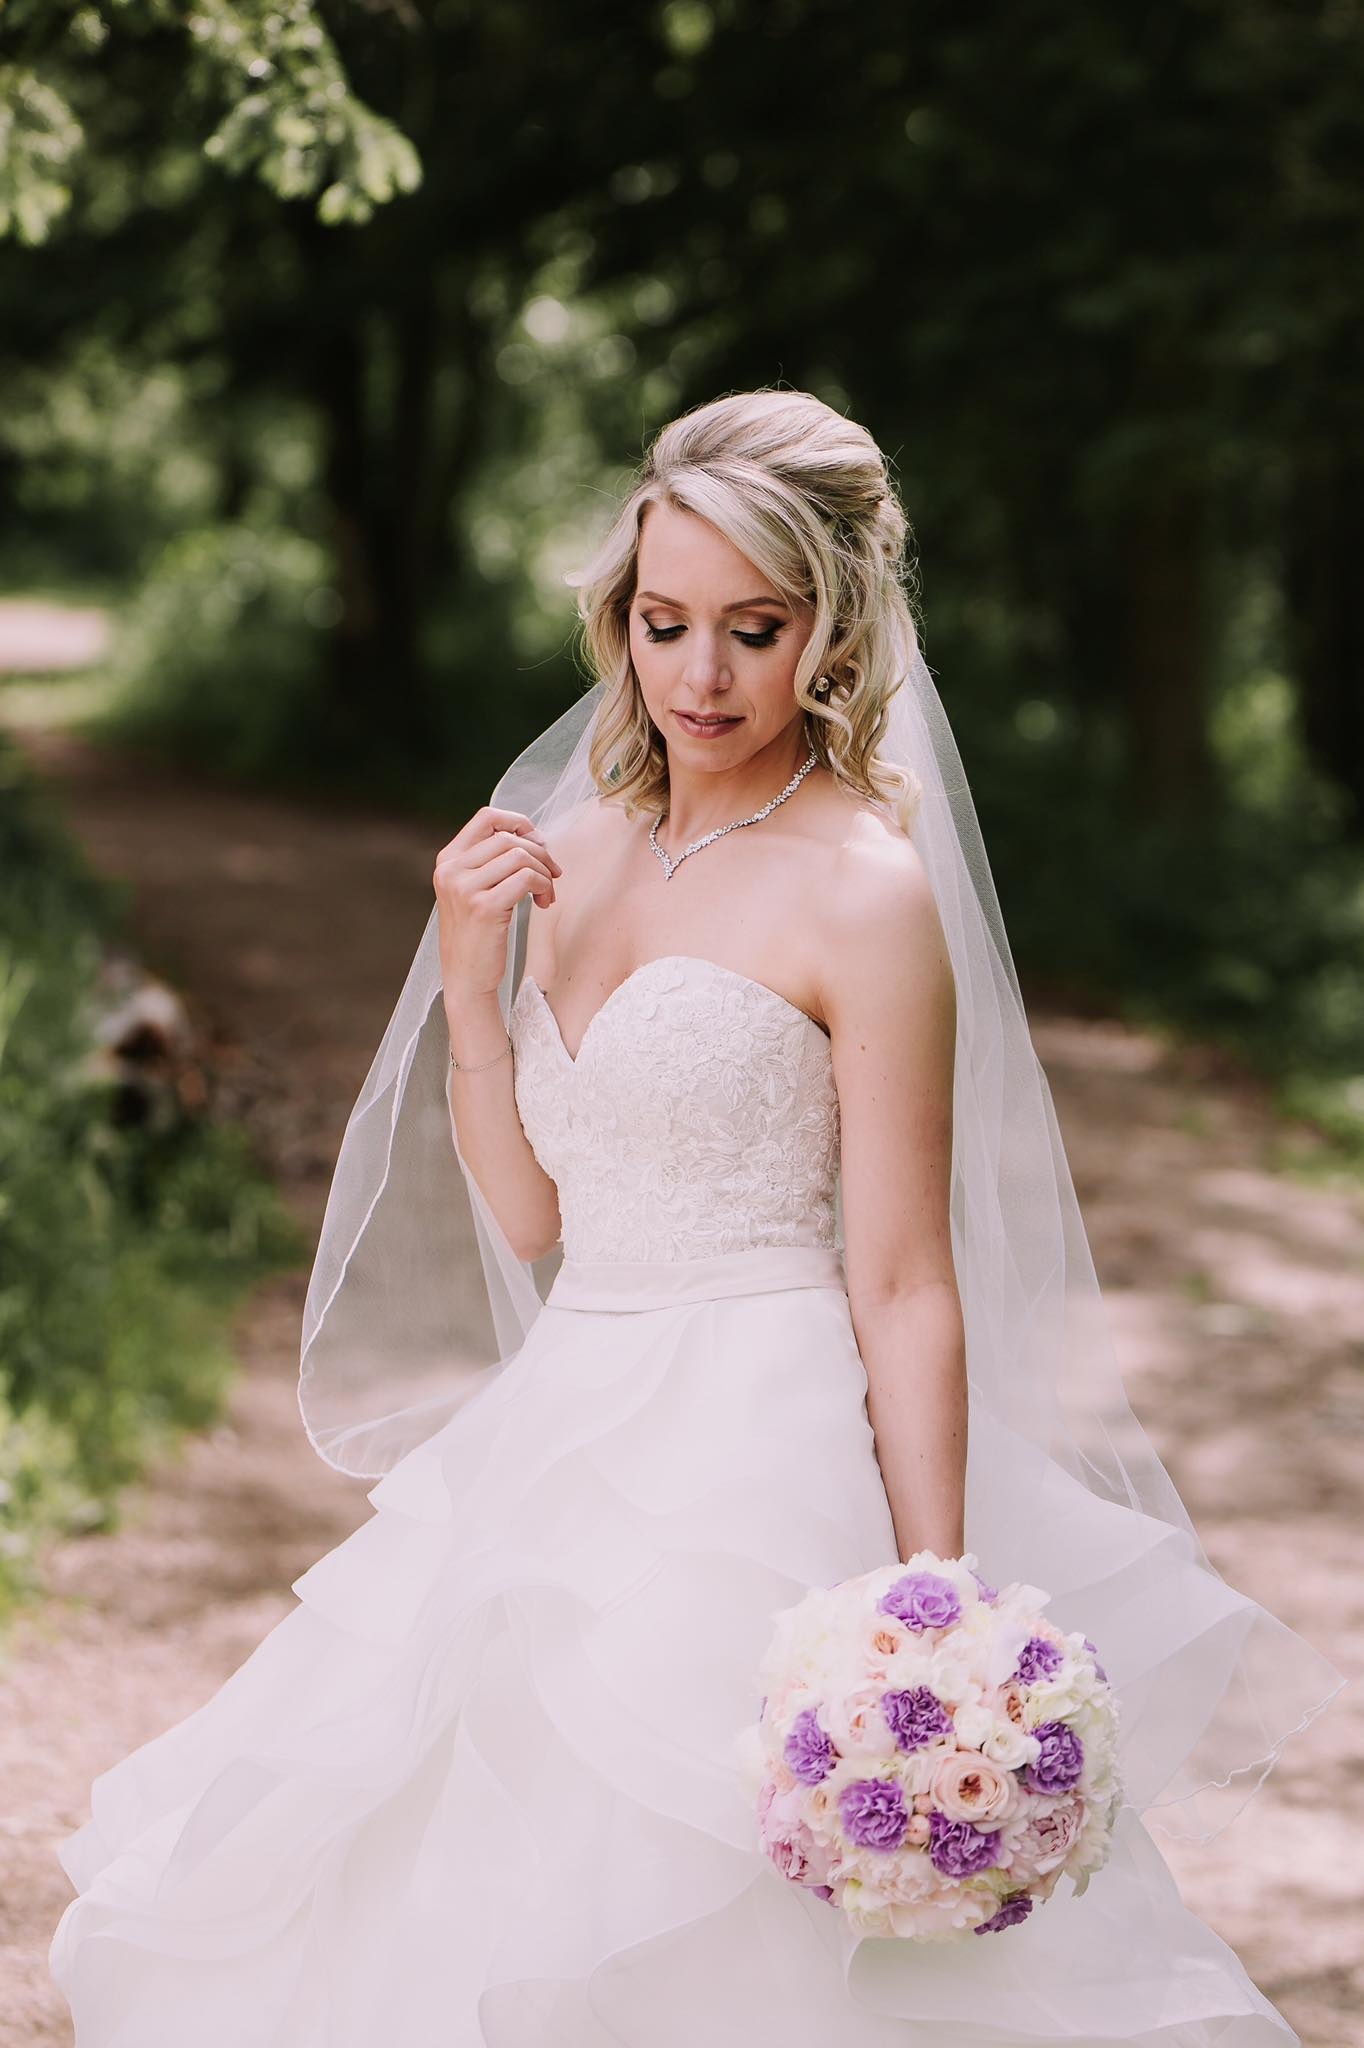 Beautiful Bride Stephanie-photo Redbloom photography